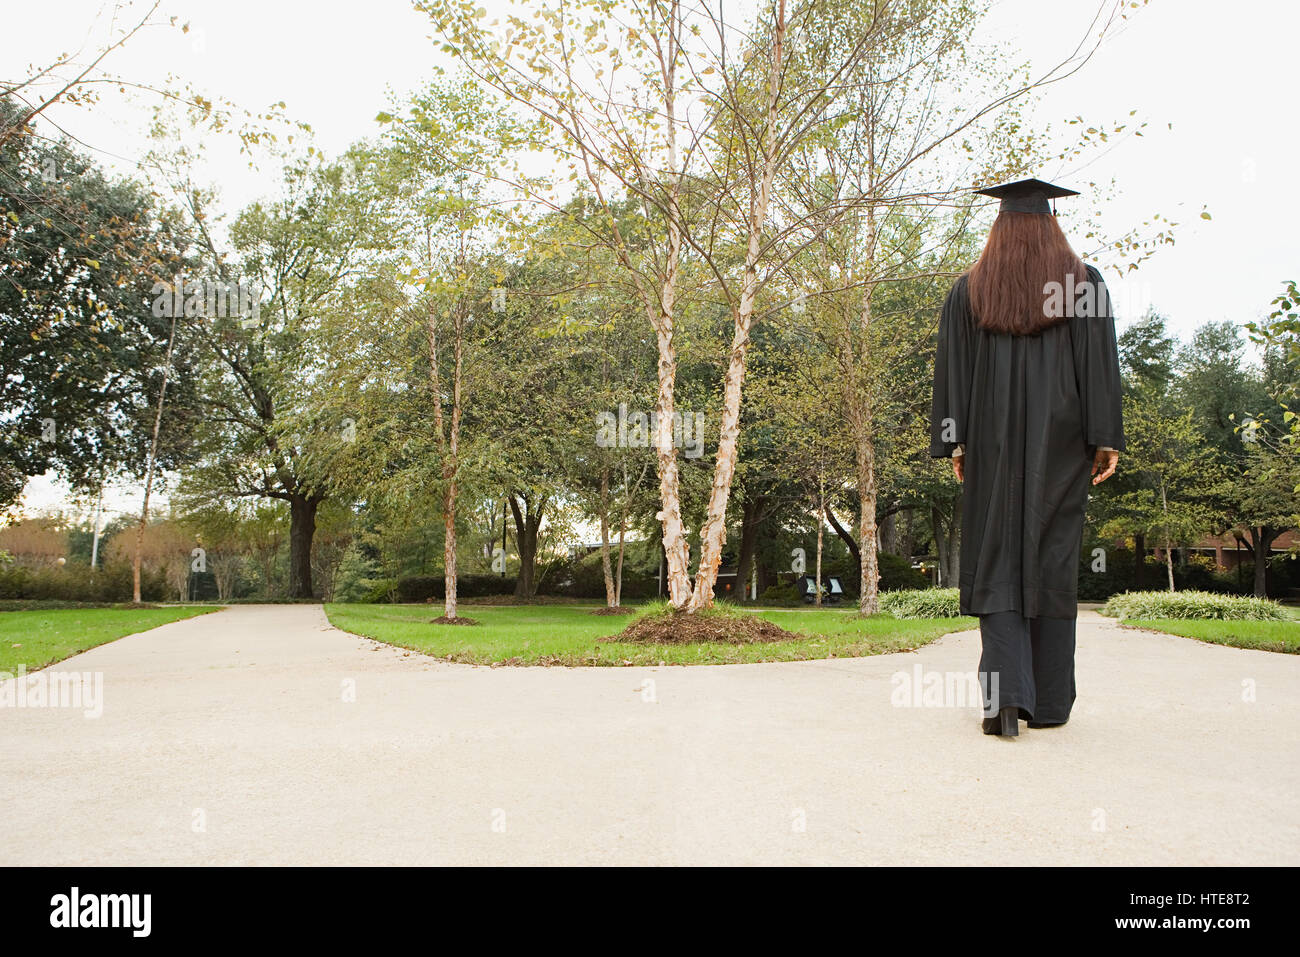 Female graduate walking down a path - Stock Image